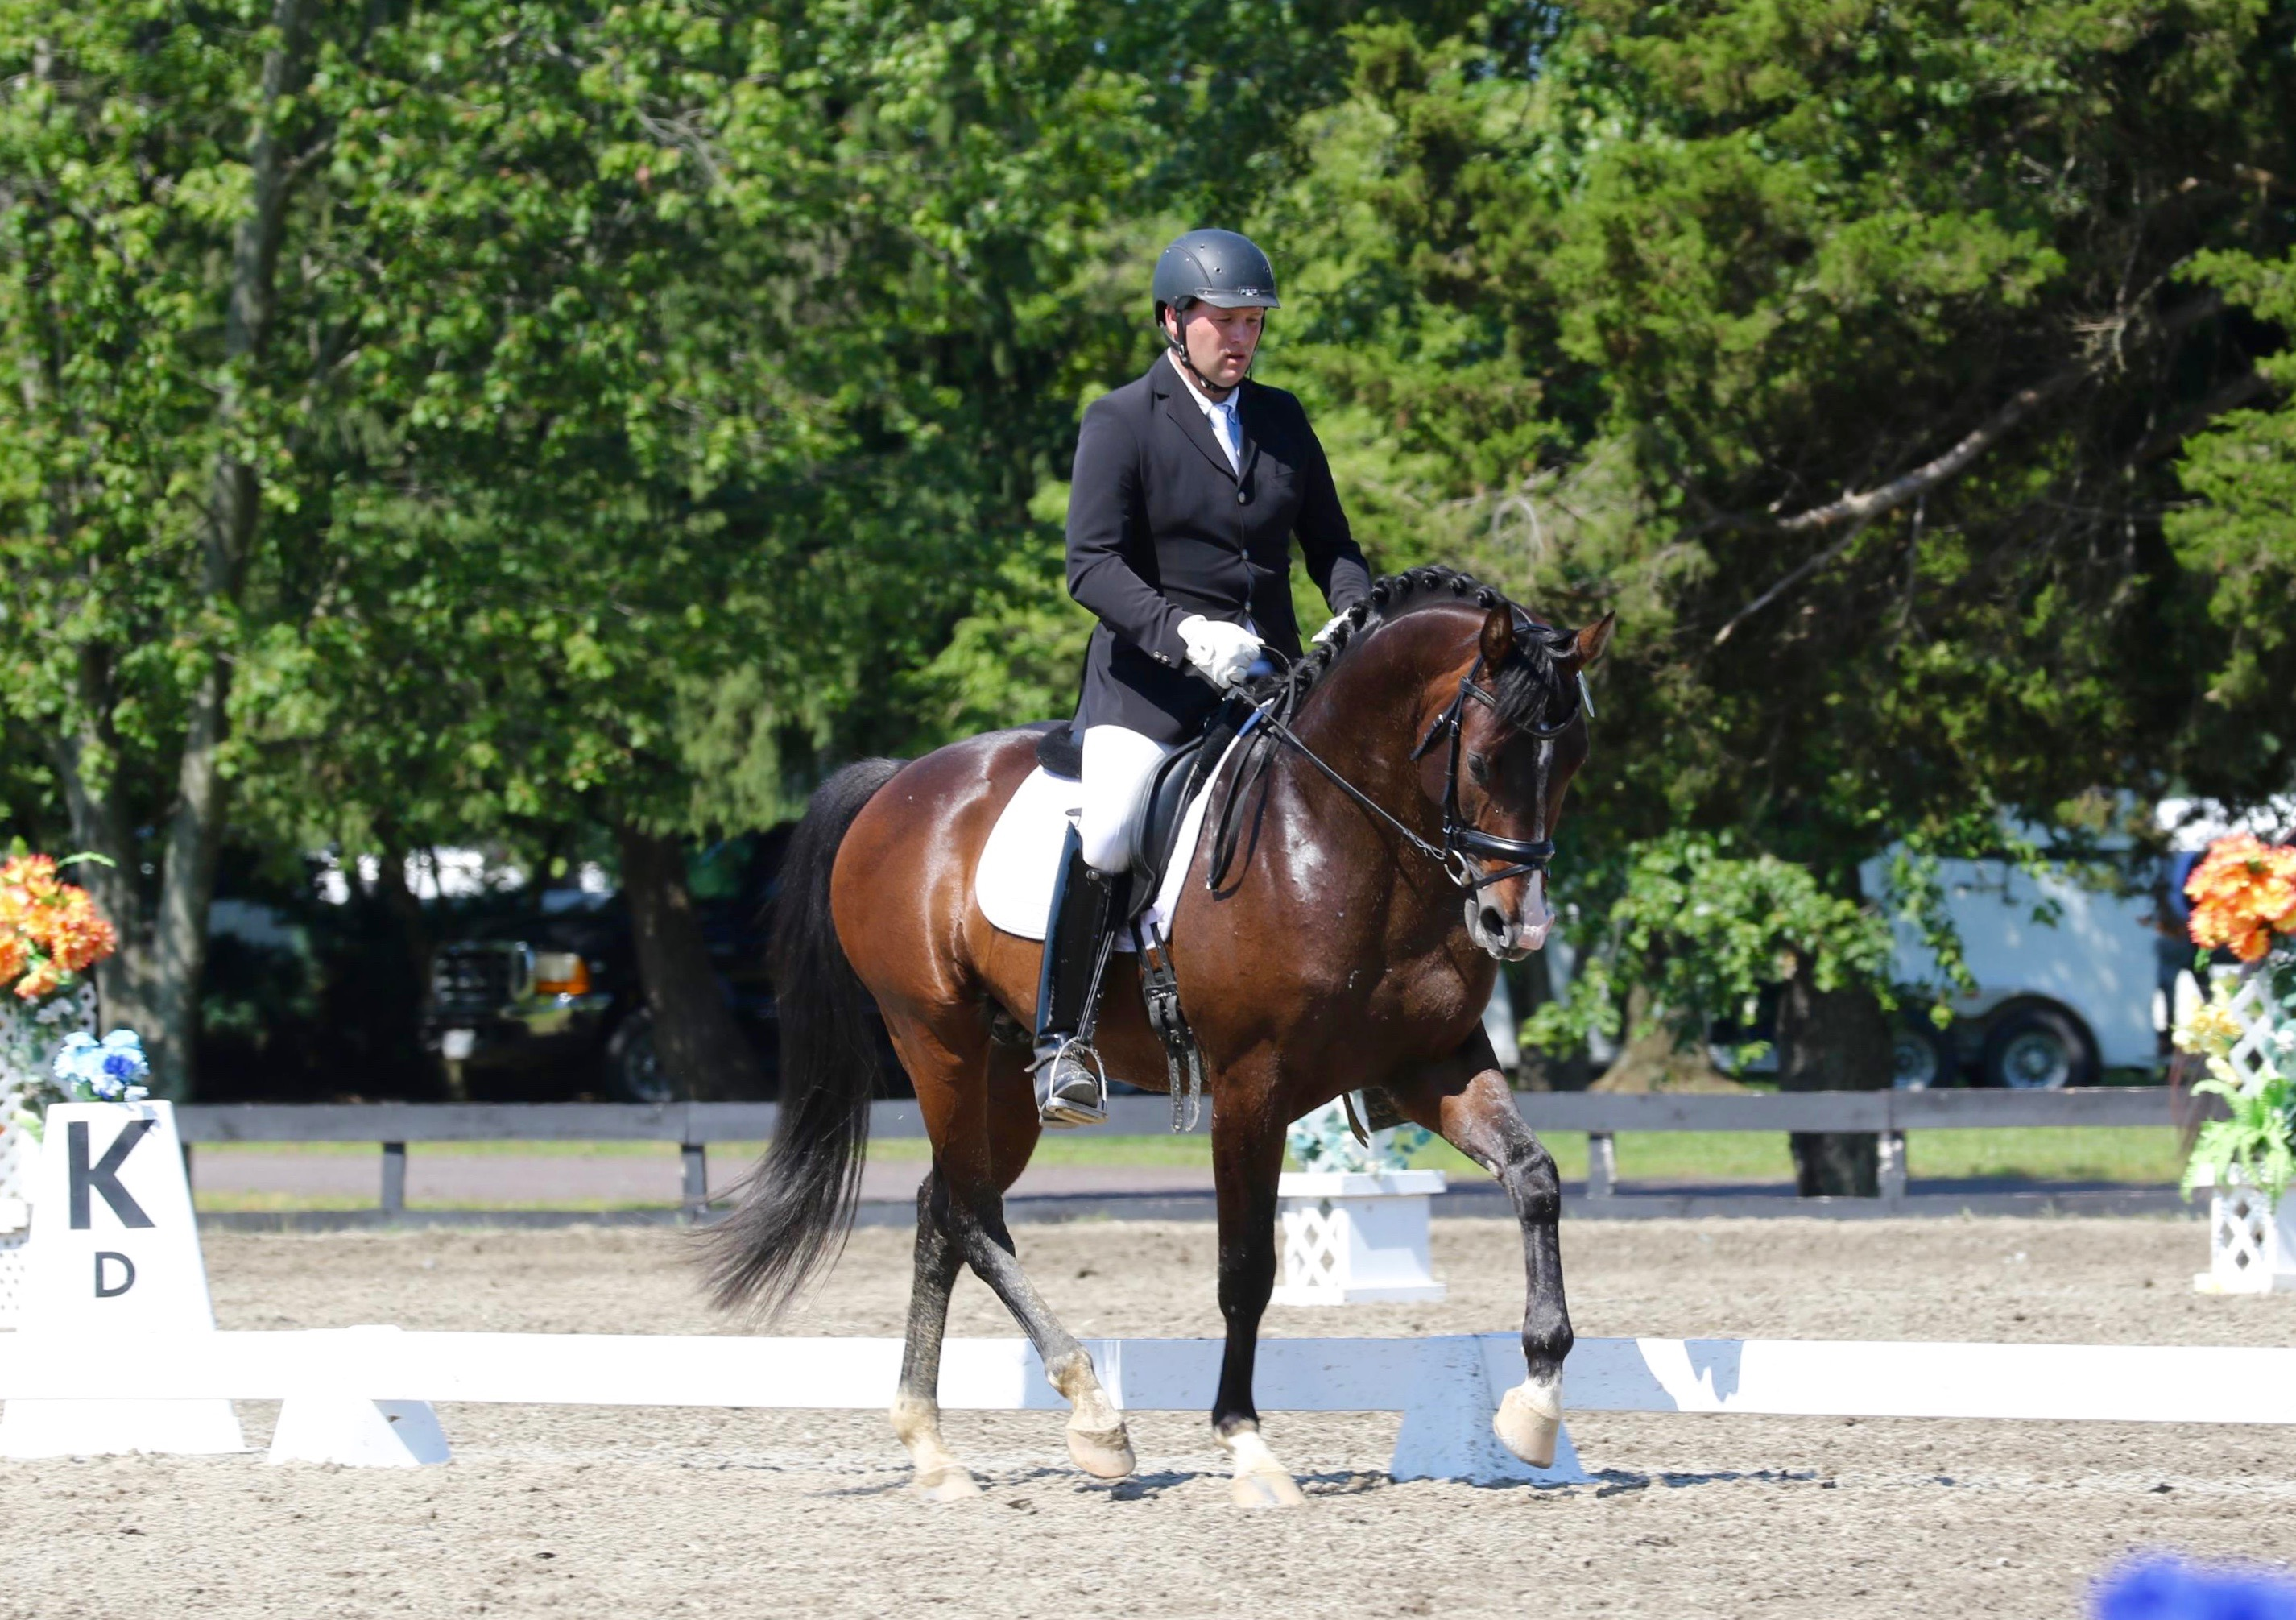 Artie-Virginia Summer Dressage, 2016